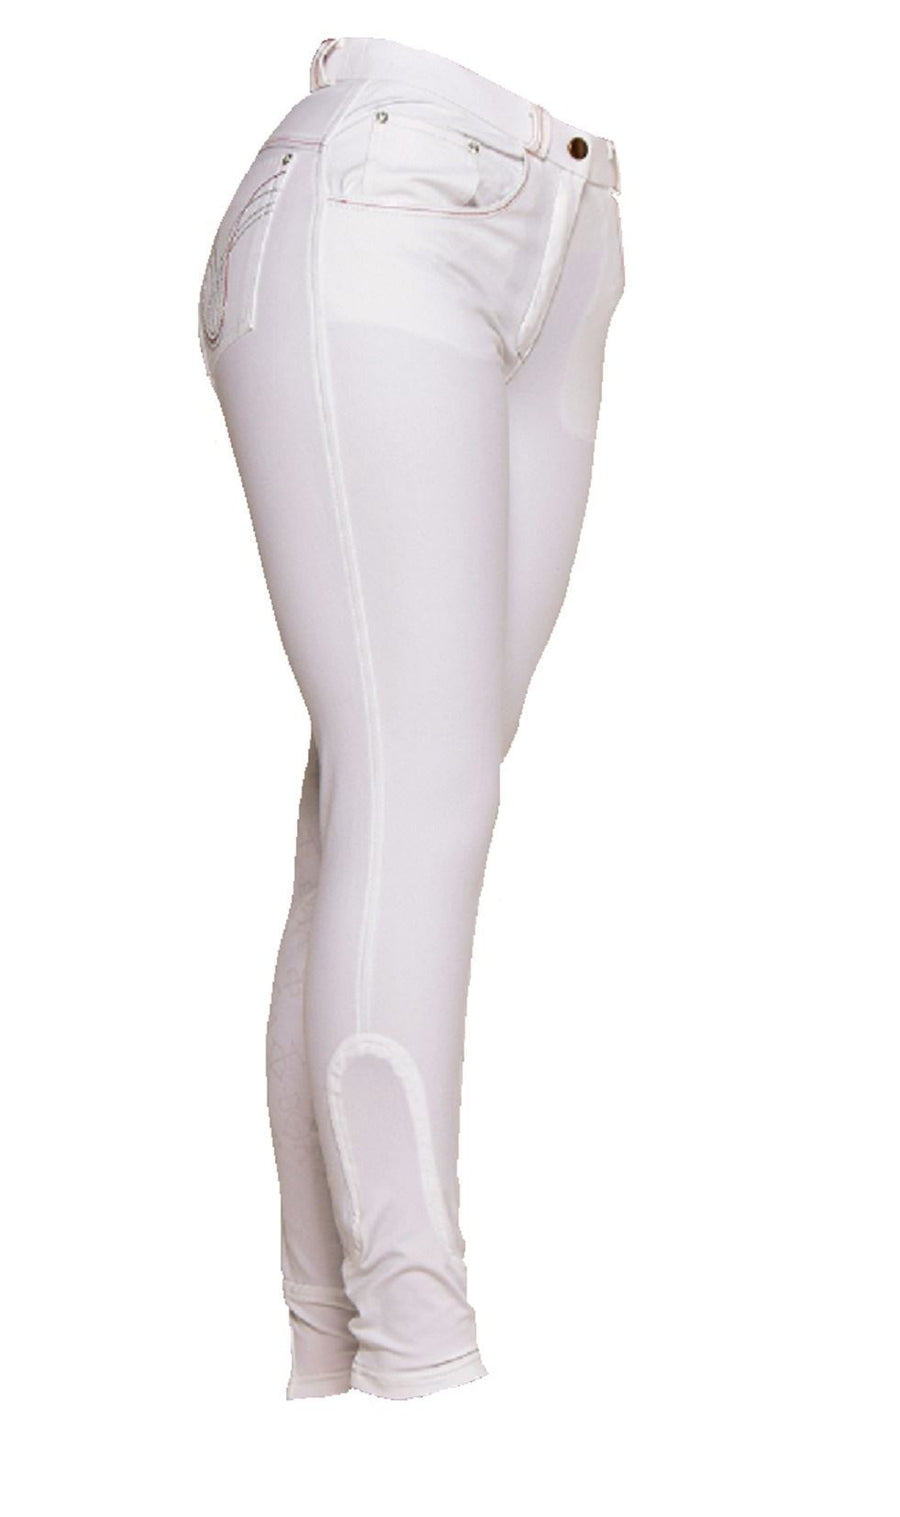 Bow & Arrow Micro Silicone Breeches White